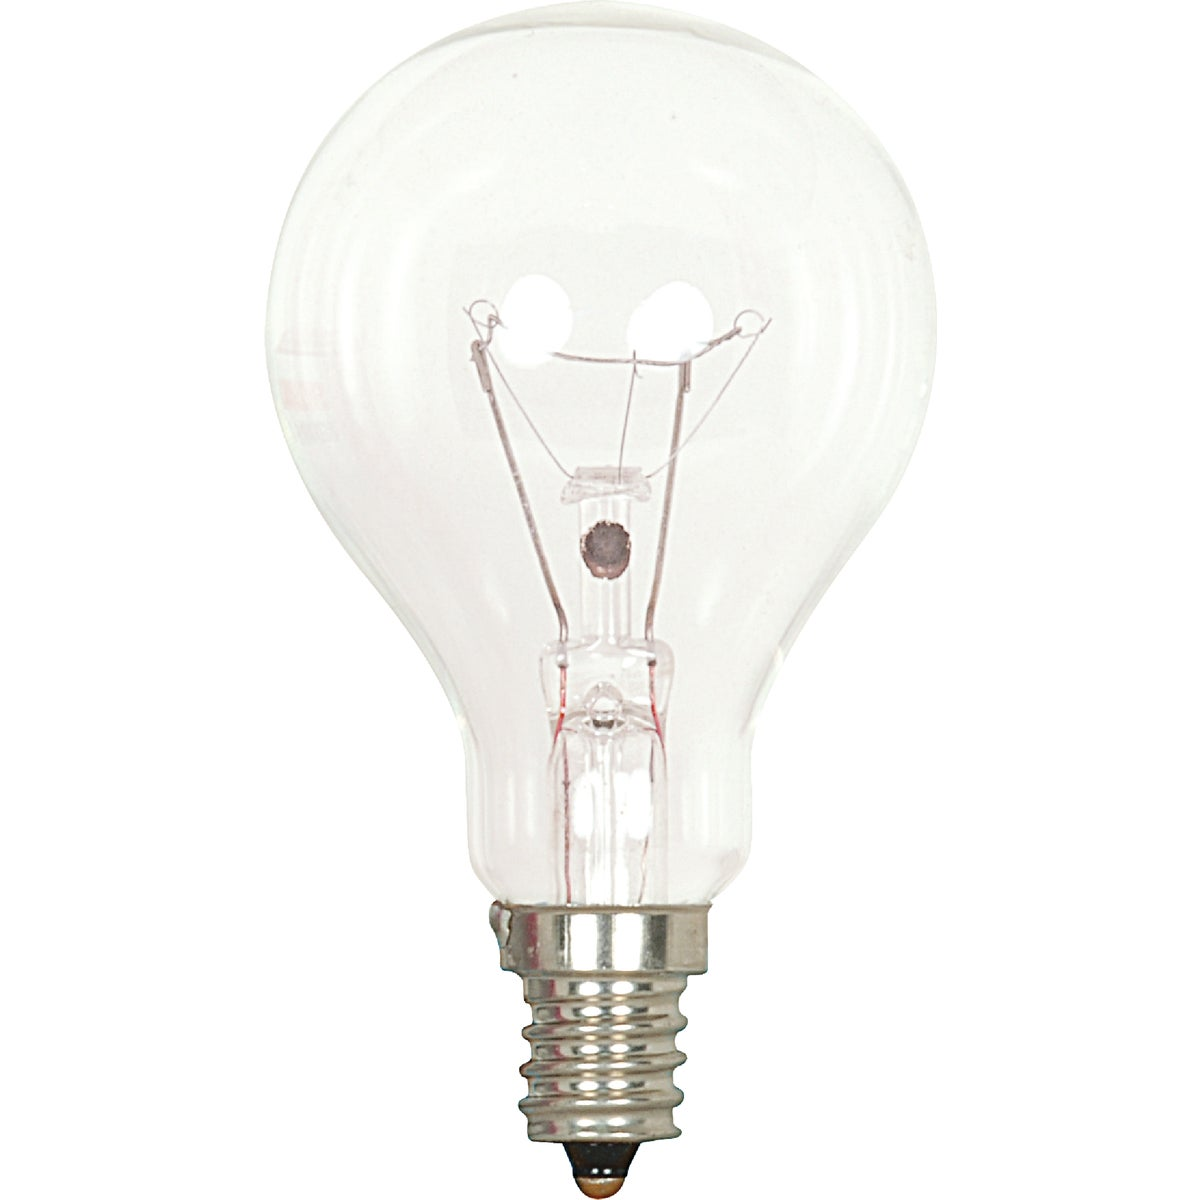 60W CLR CEILING FAN BULB - 71395 by G E Lighting